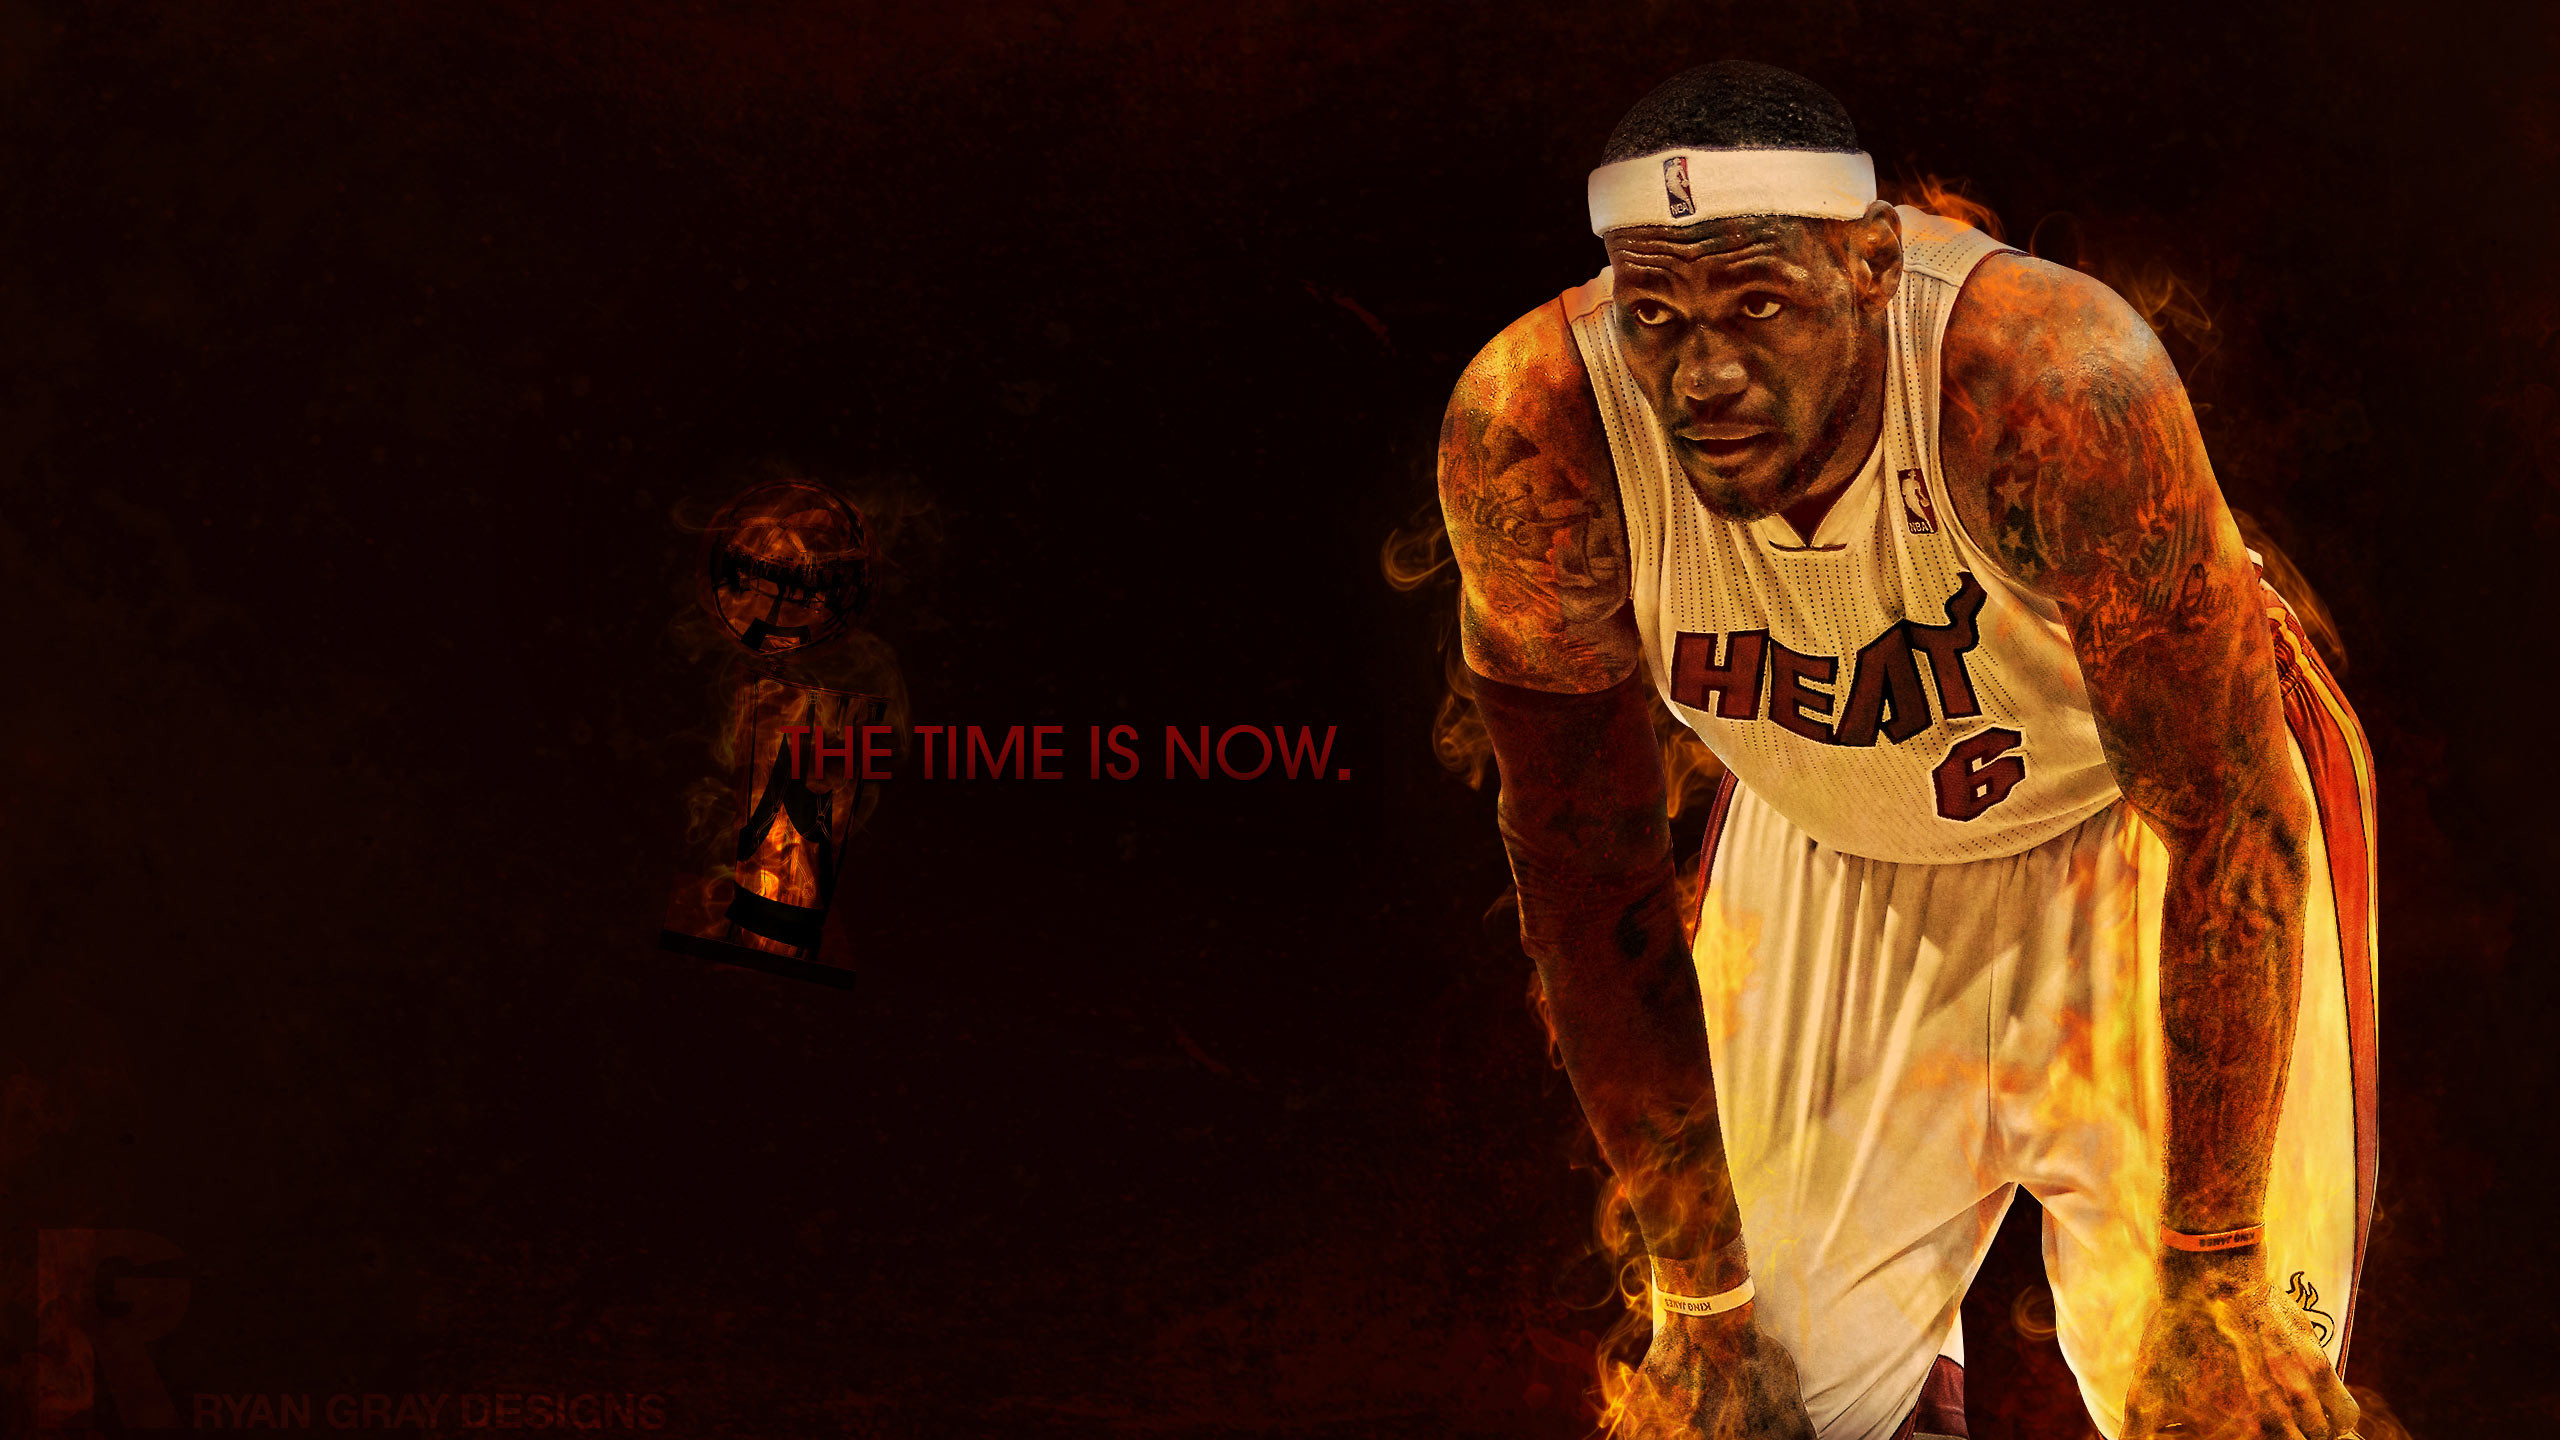 2560x1440 LeBron James NBA Wallpaper